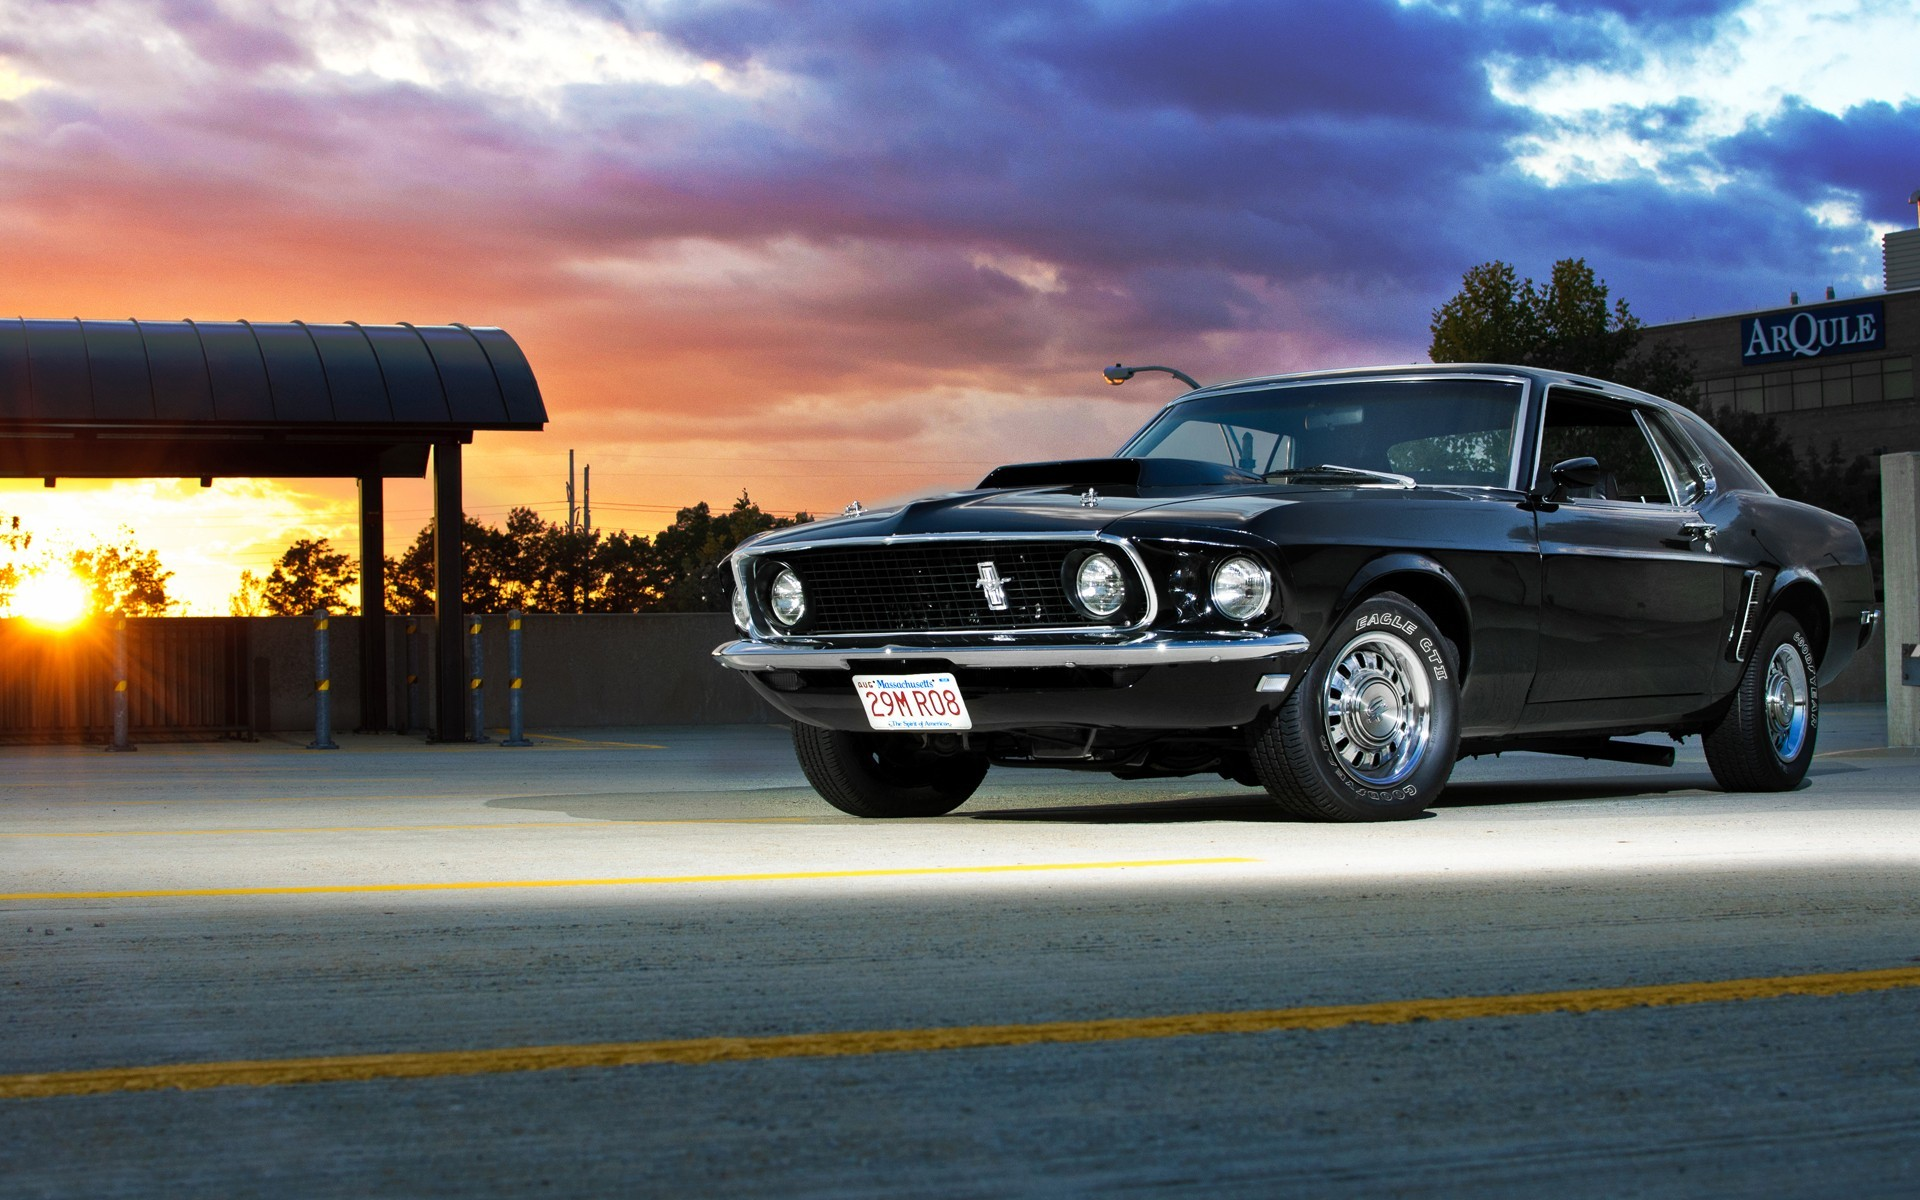 Cars muscle cars 1969 vehicles ford mustang wallpaper | | 12340 |  WallpaperUP